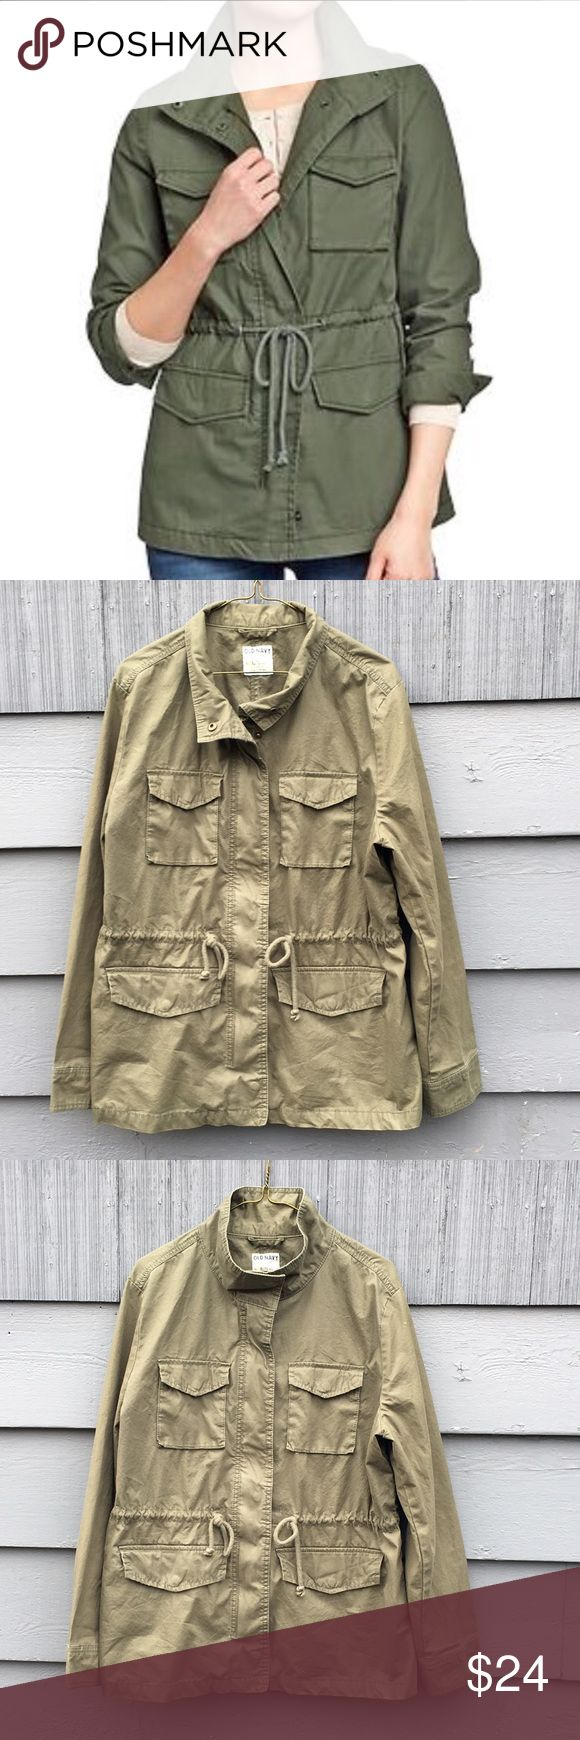 "Army Jacket Utility Coat Green Olive Field Parka Old Navy army green field jacket. Zip and button up front, adjustable drawstring at waist. Can be worn with the Collar cuffed or zipped all the way up. Good condition, only worn a few times. Size: XL True to size. Chest: 46"" Length: 28"" Old Navy Jackets & Coats Utility Jackets"